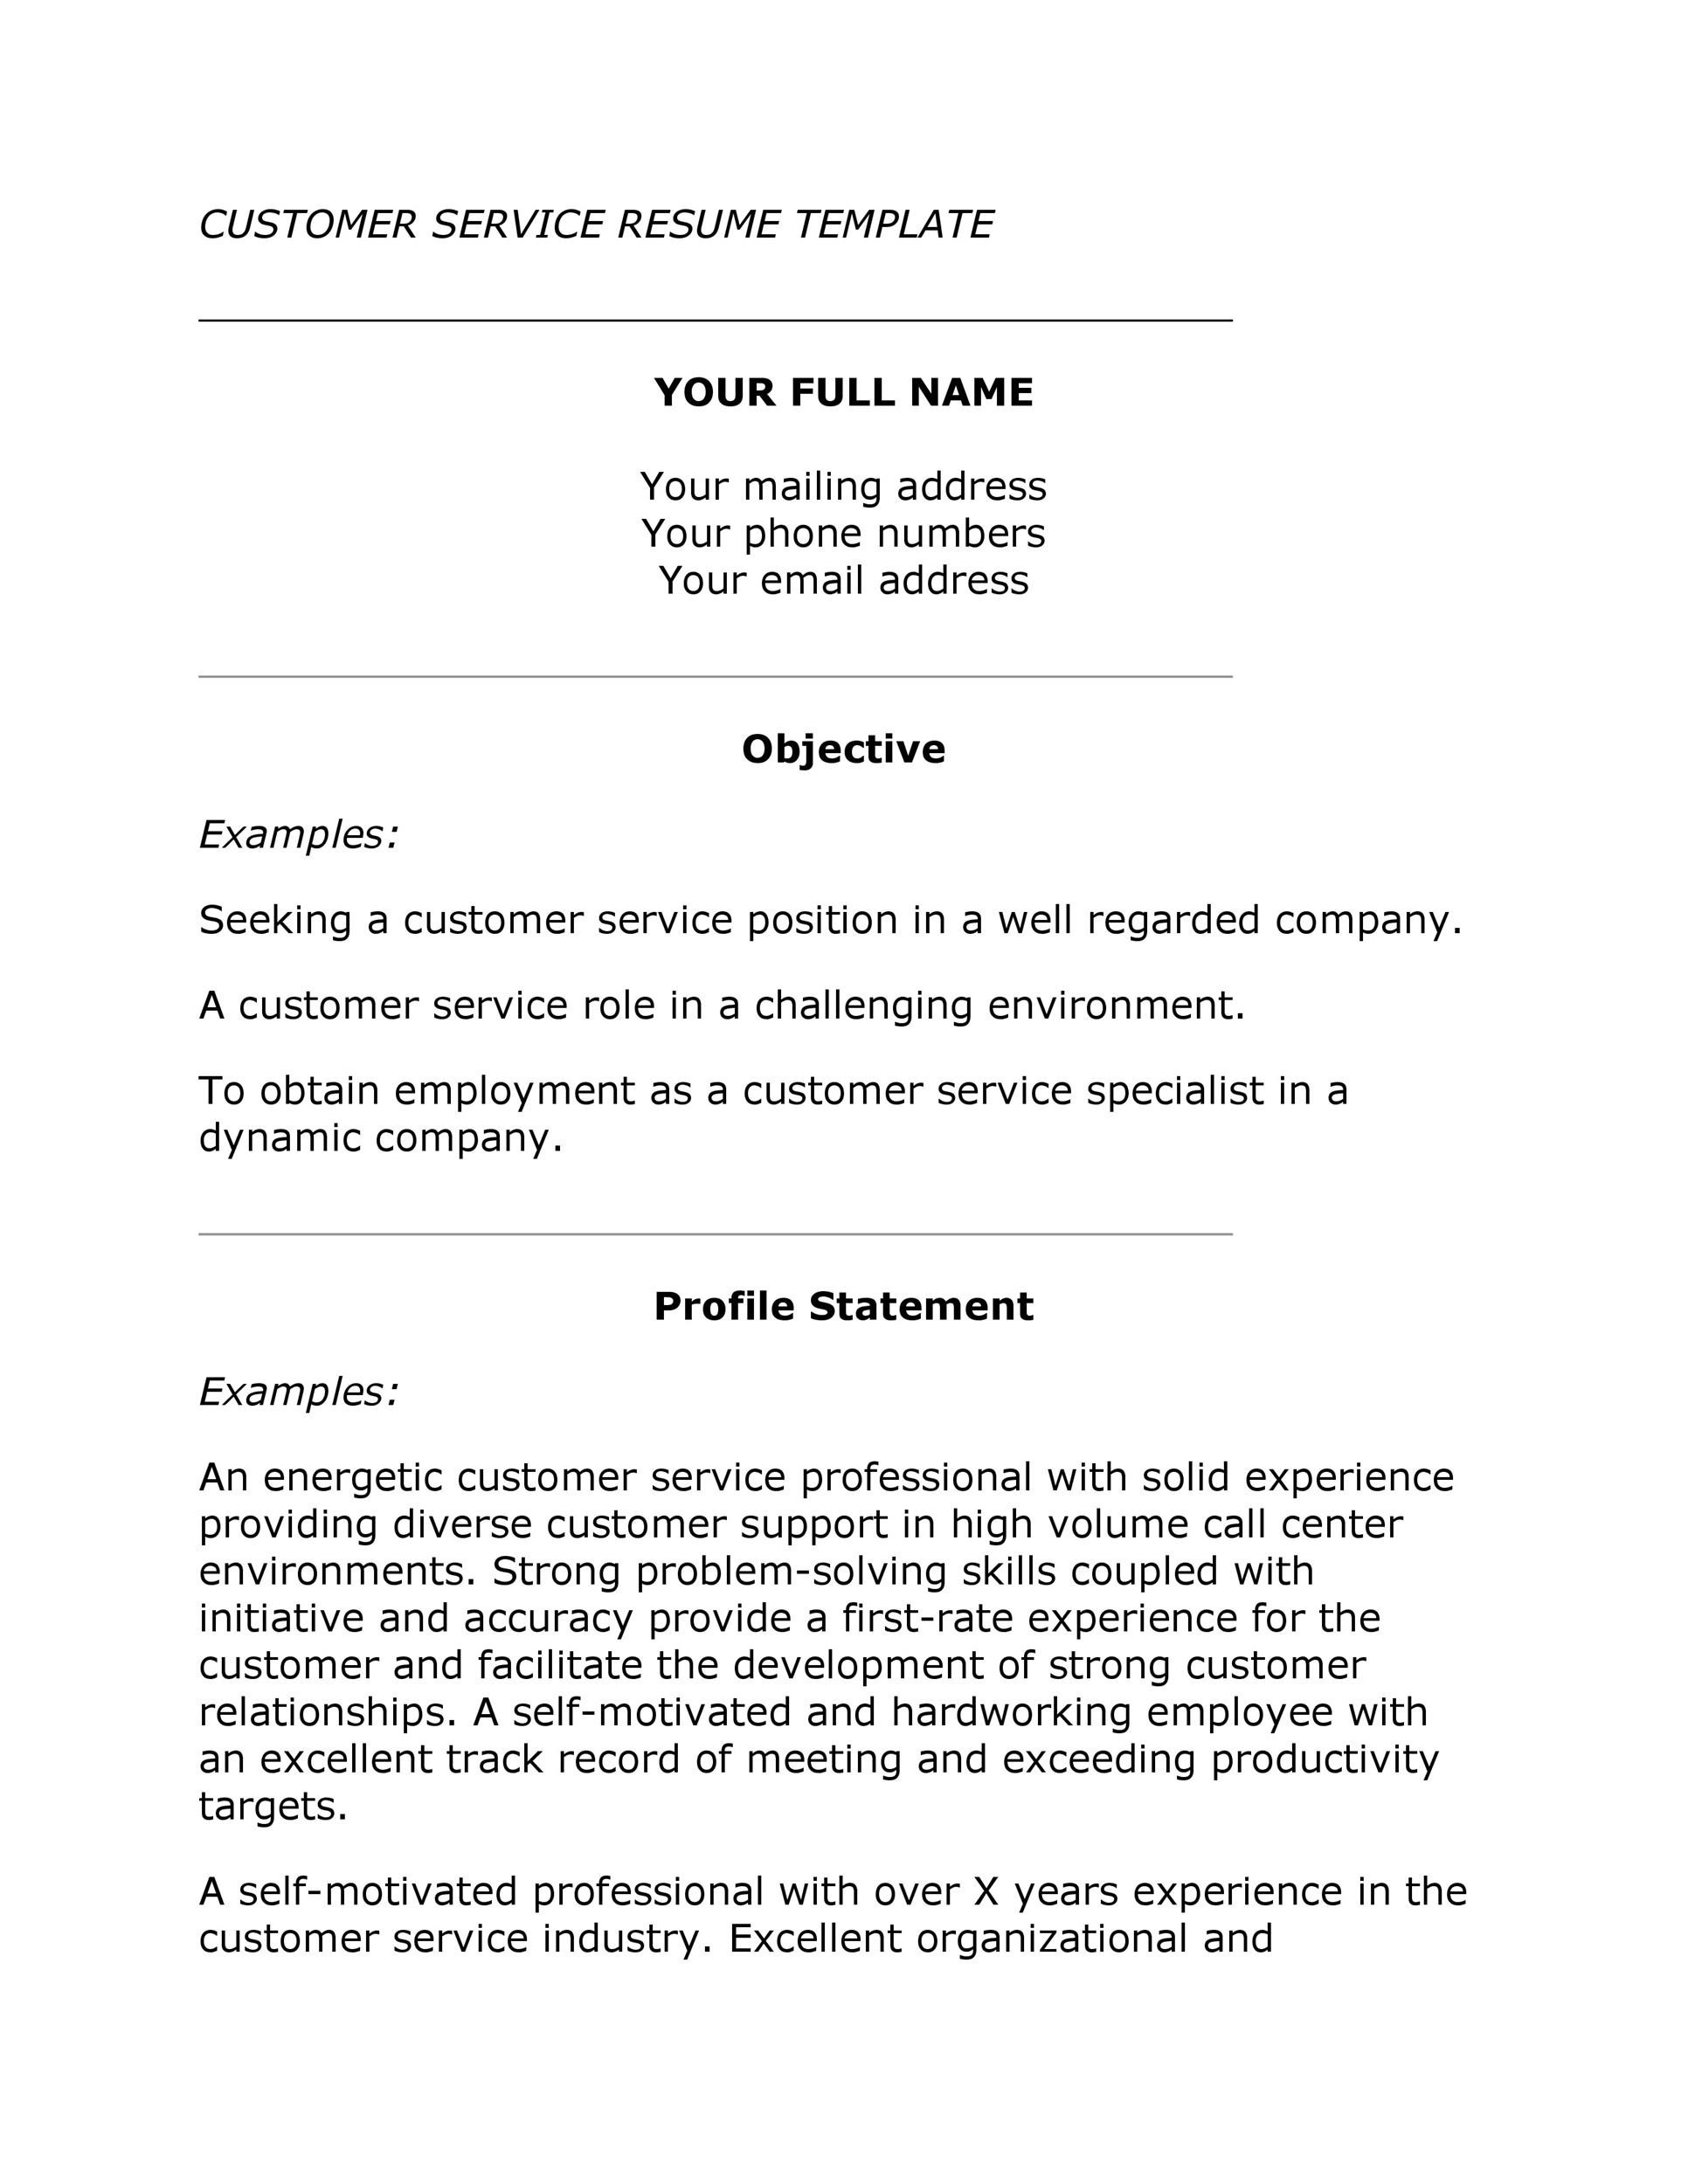 Customer Service Resume Templates  Resume Template  Professional